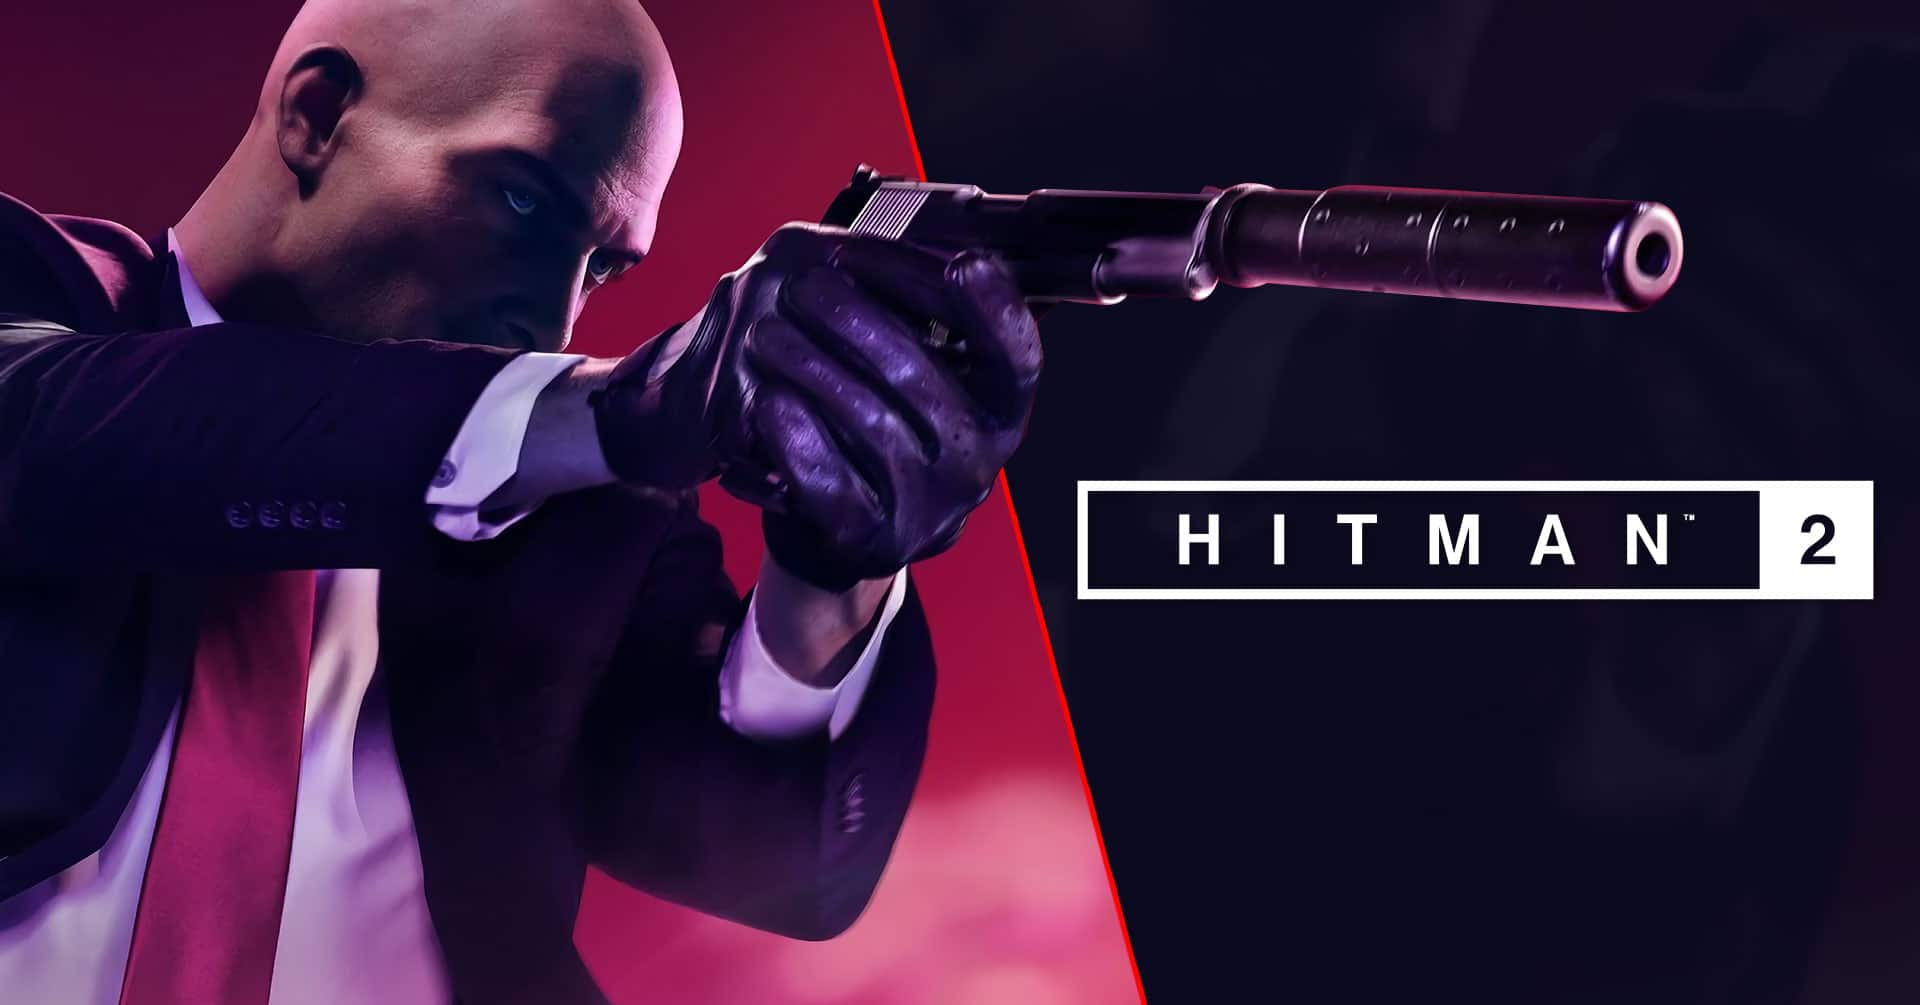 Hitman 2 Review: Brilliant Execution